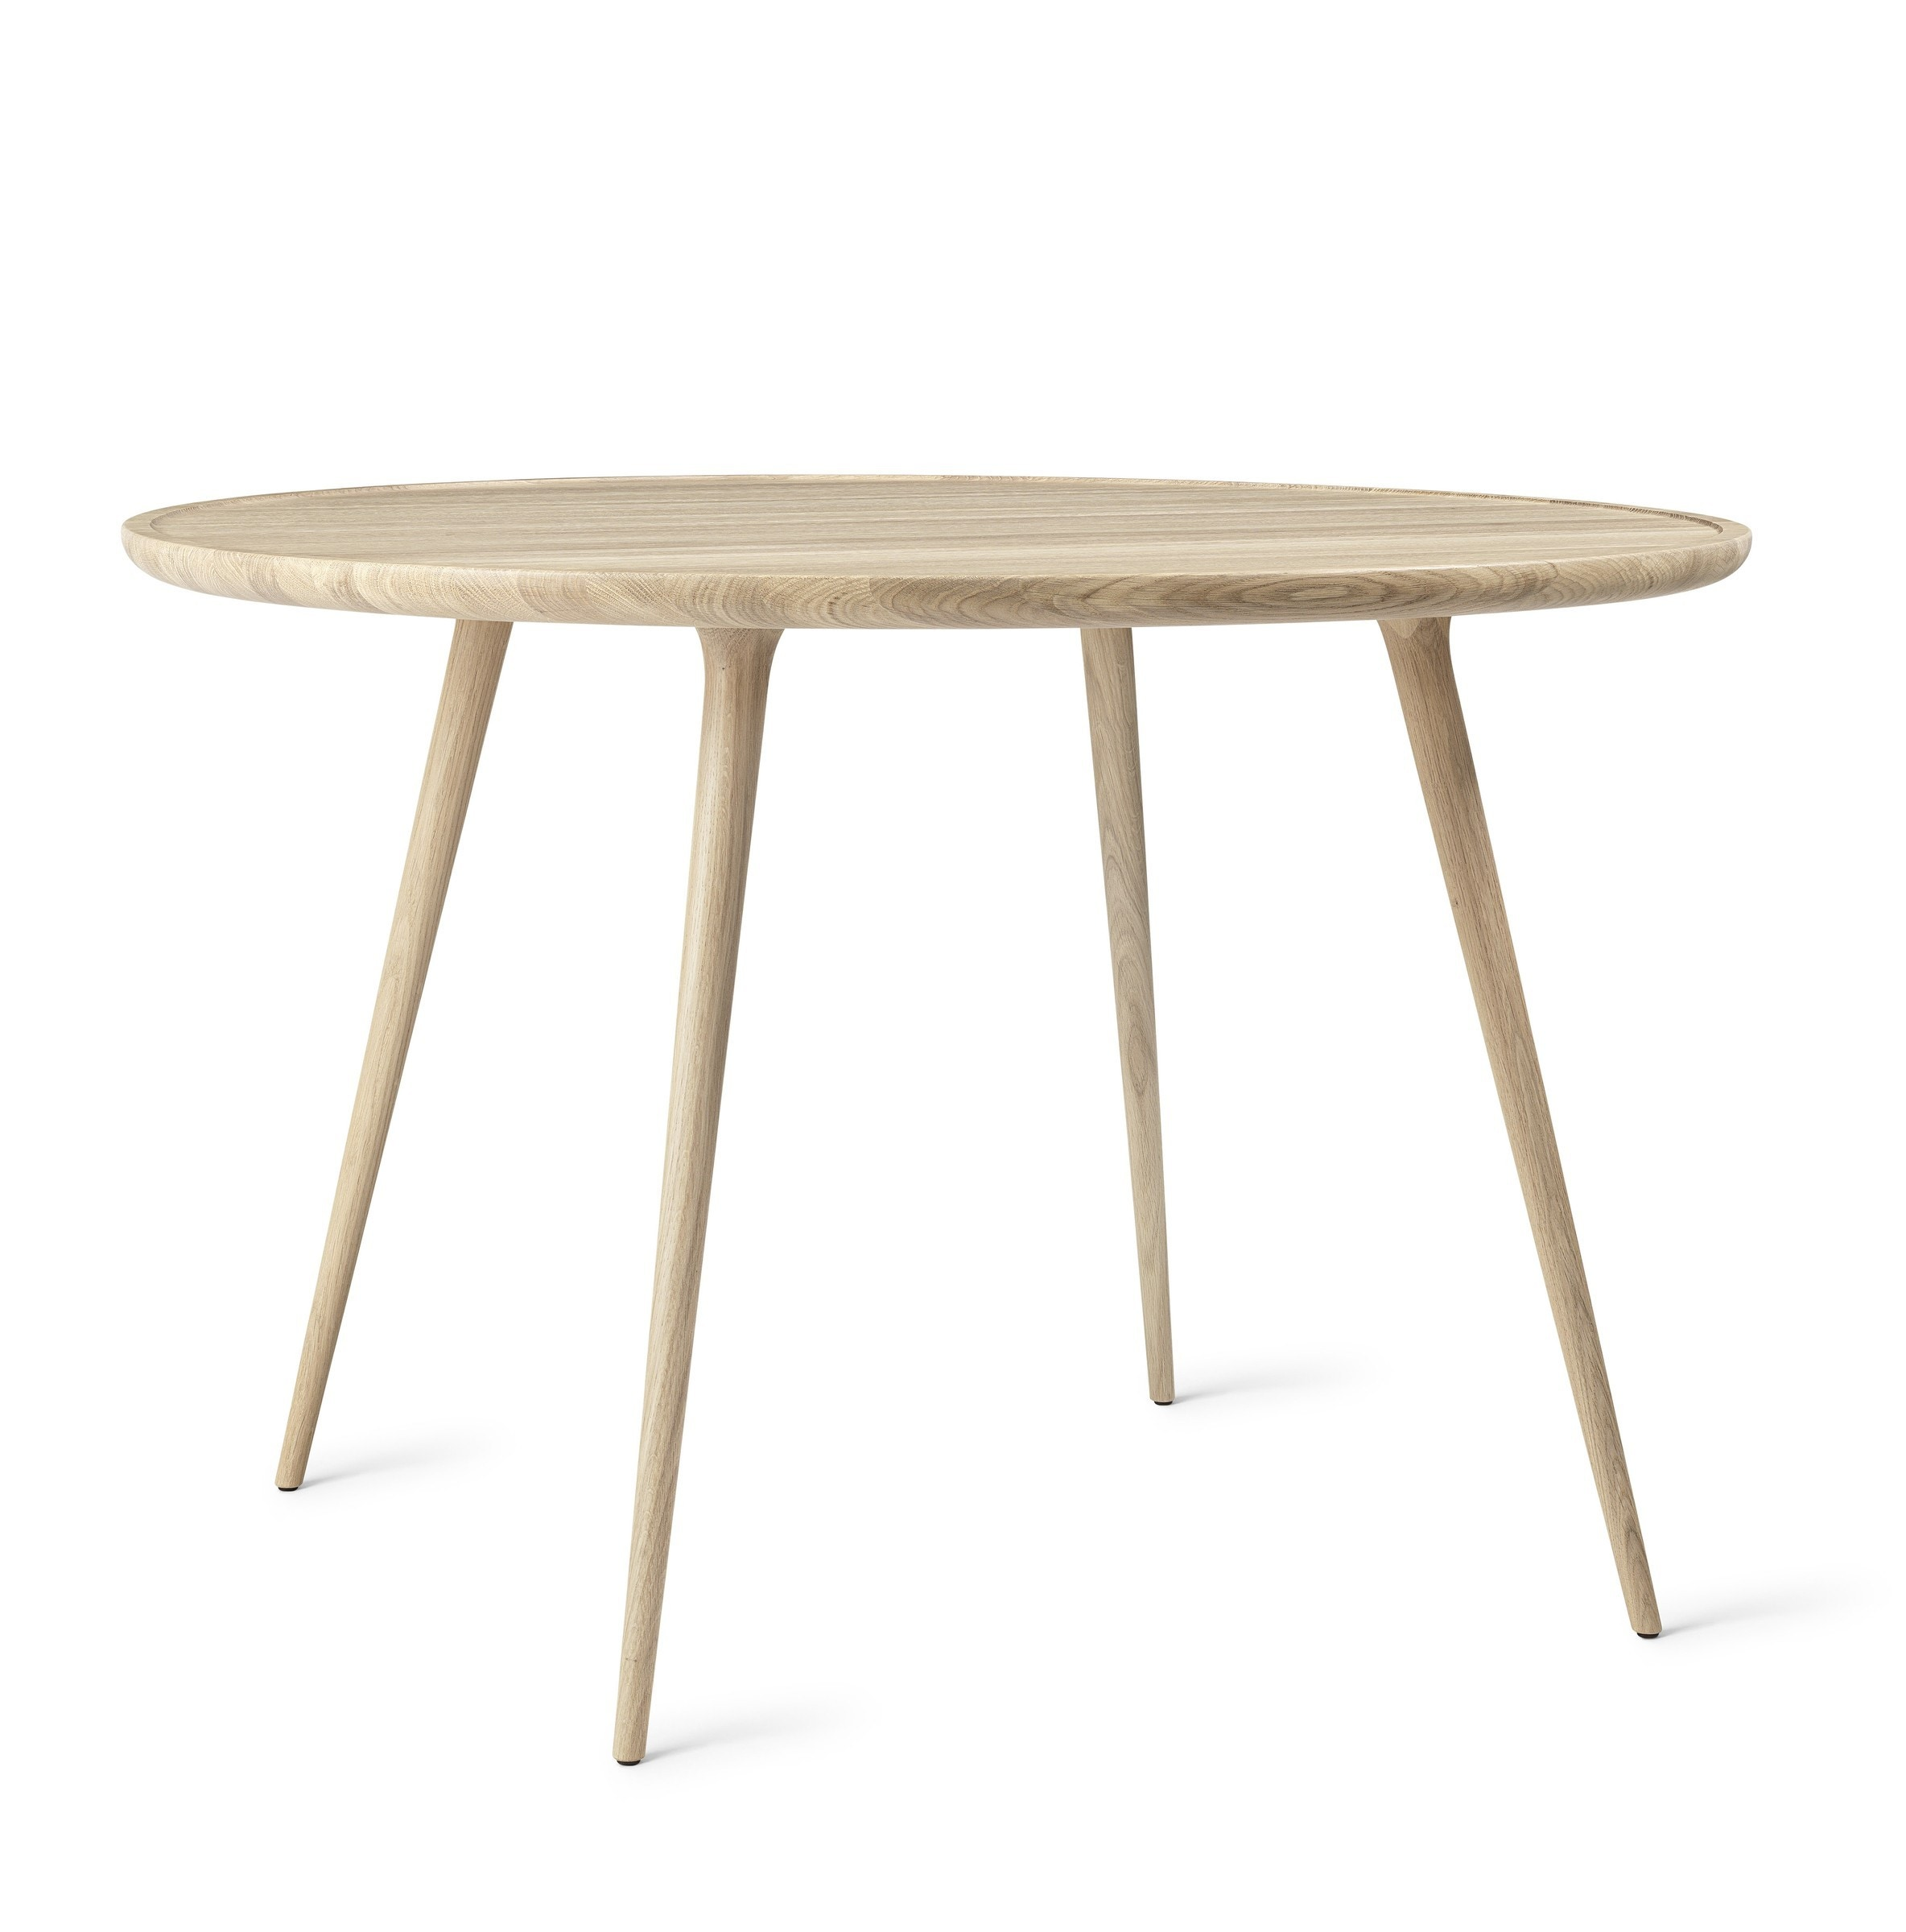 sc 1 th 226 & Mater Accent Dining Table - Mat Lacqured Oak